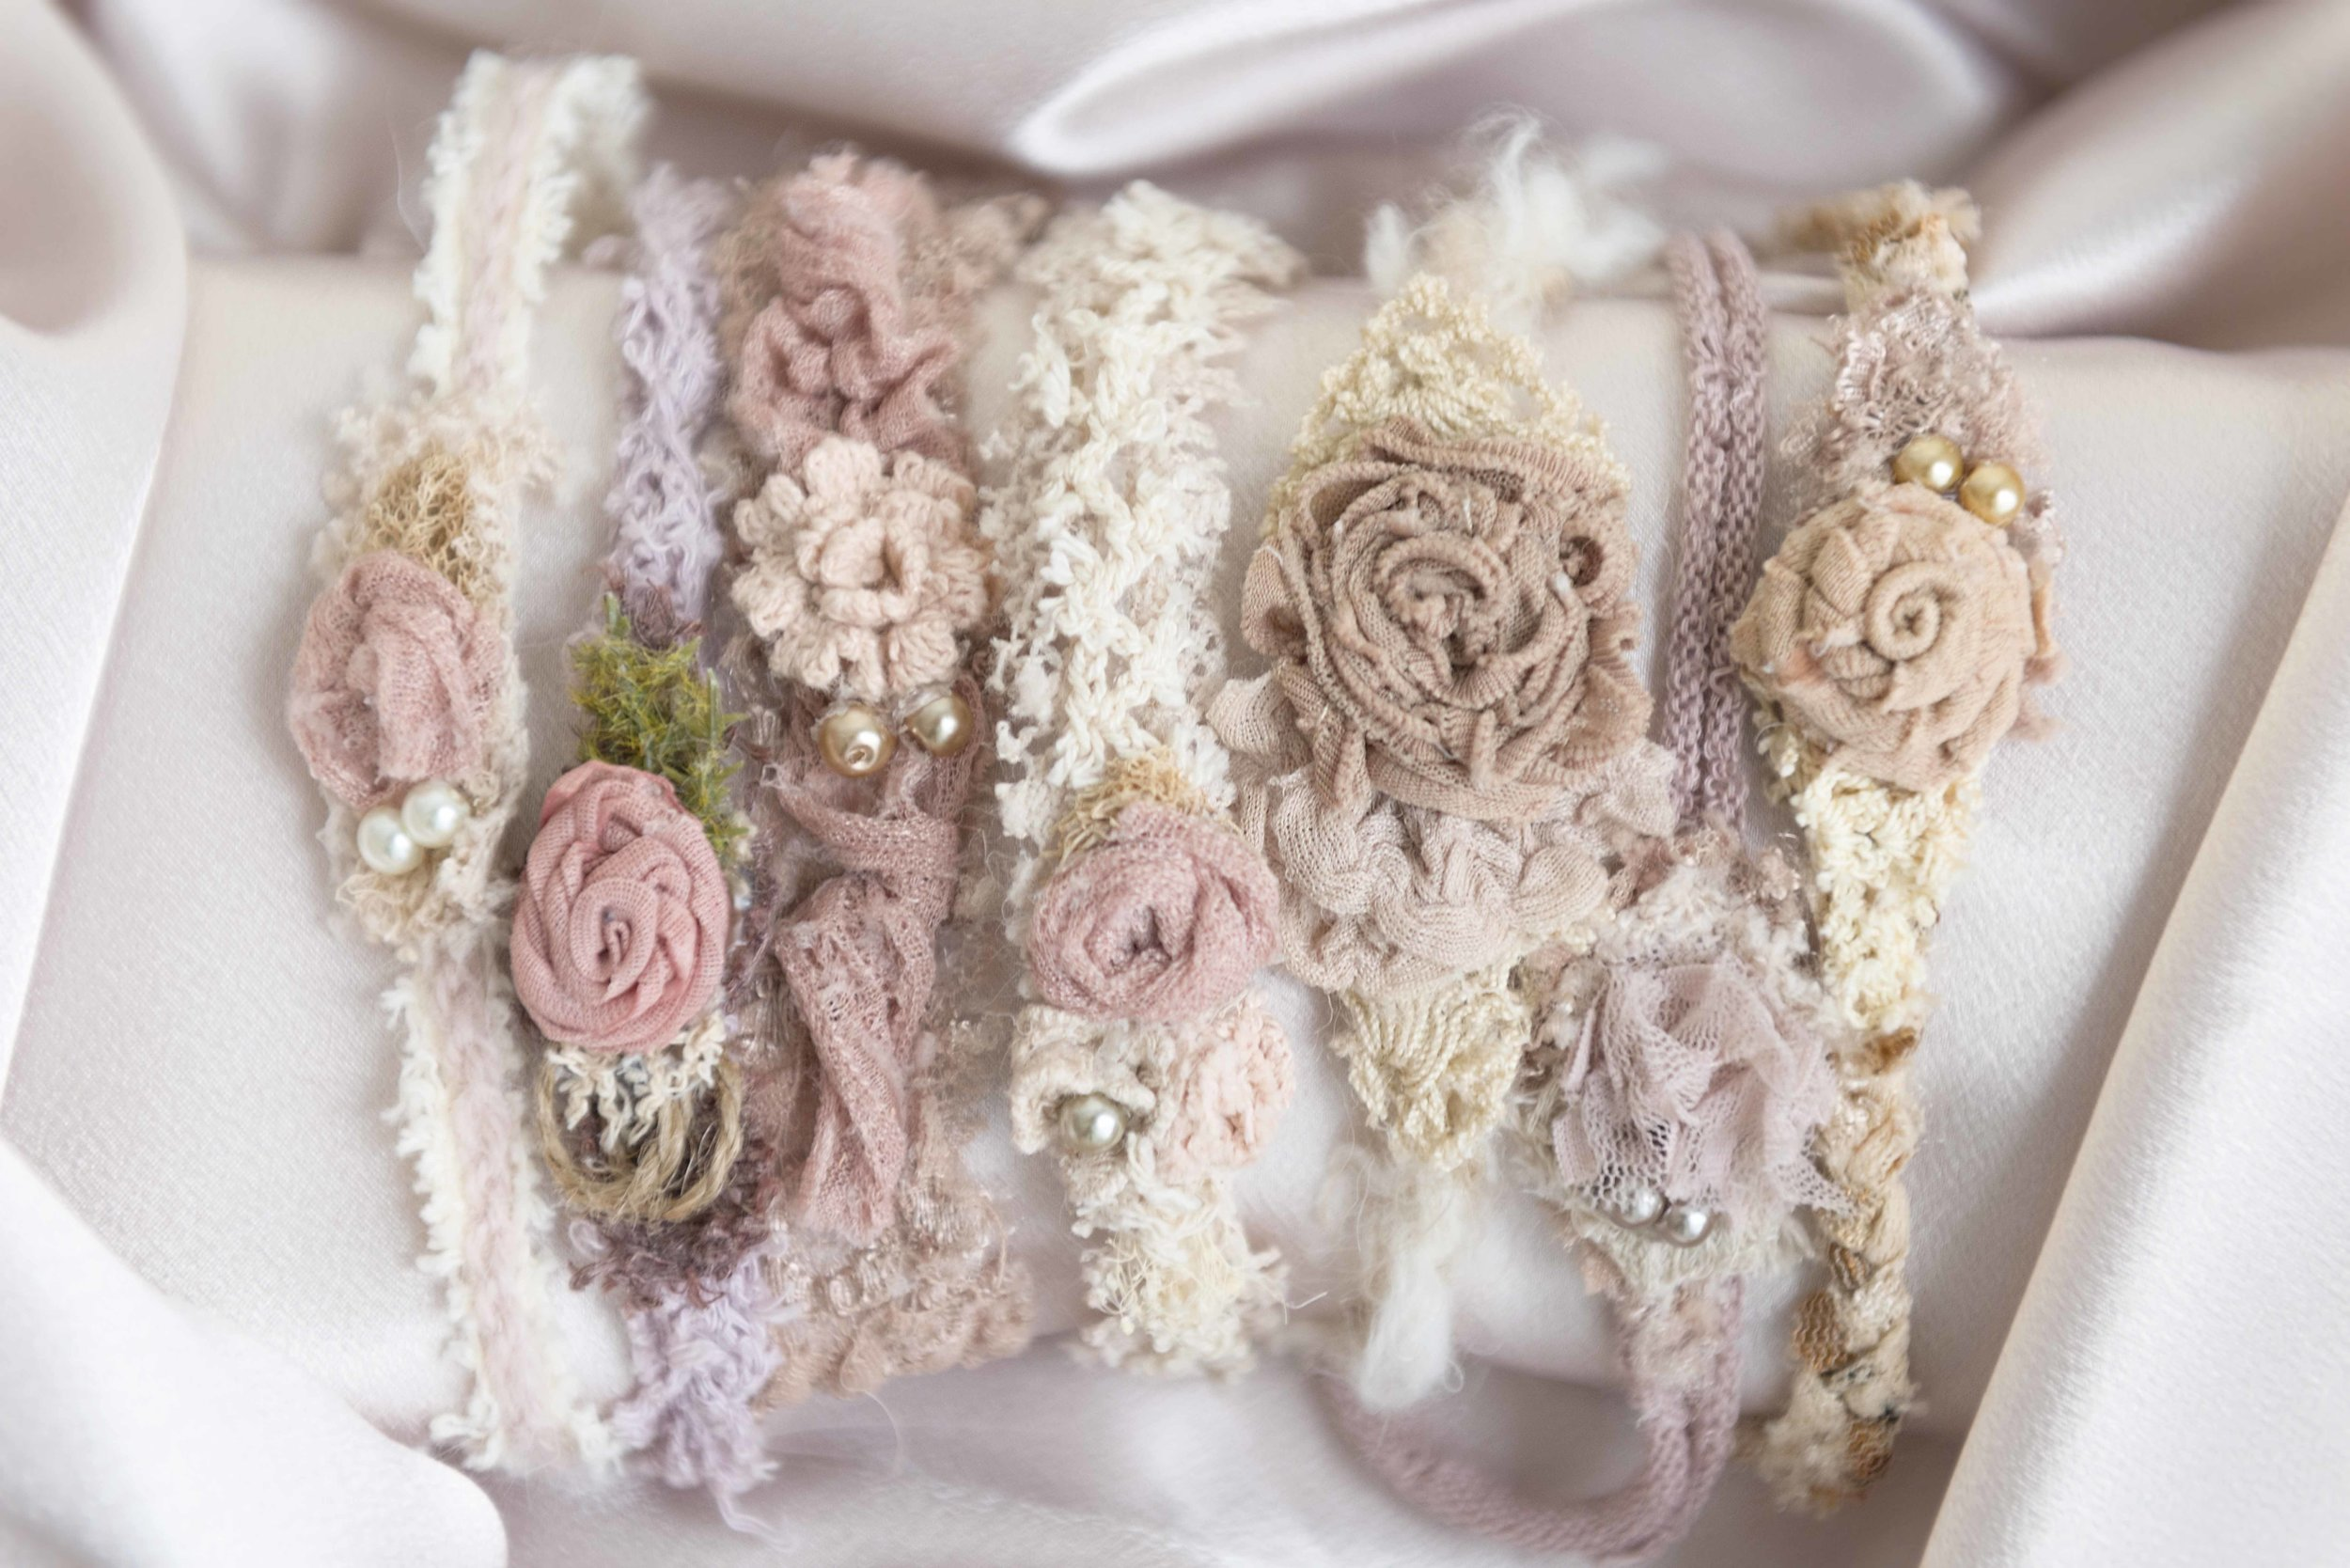 Our selection of headbands for newborn baby girls are the right touch of natural and feminine.